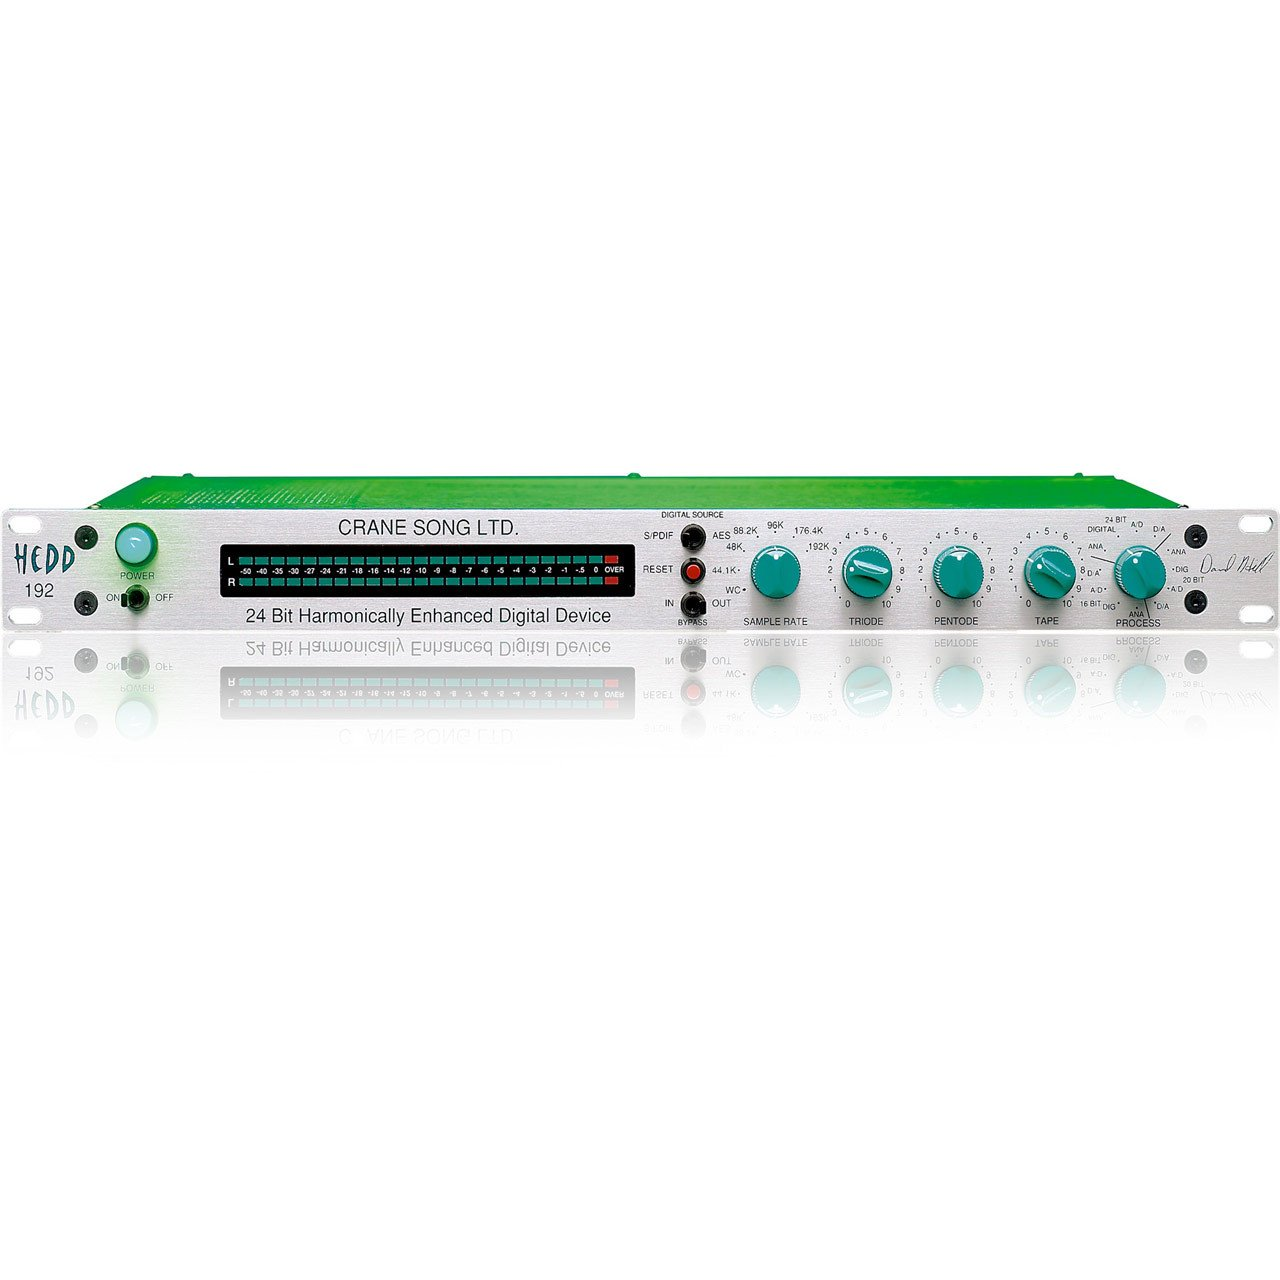 ADCs - Crane Song HEDD 192 Digital Signal Processor With 24-bit A/D & D/A Convertors